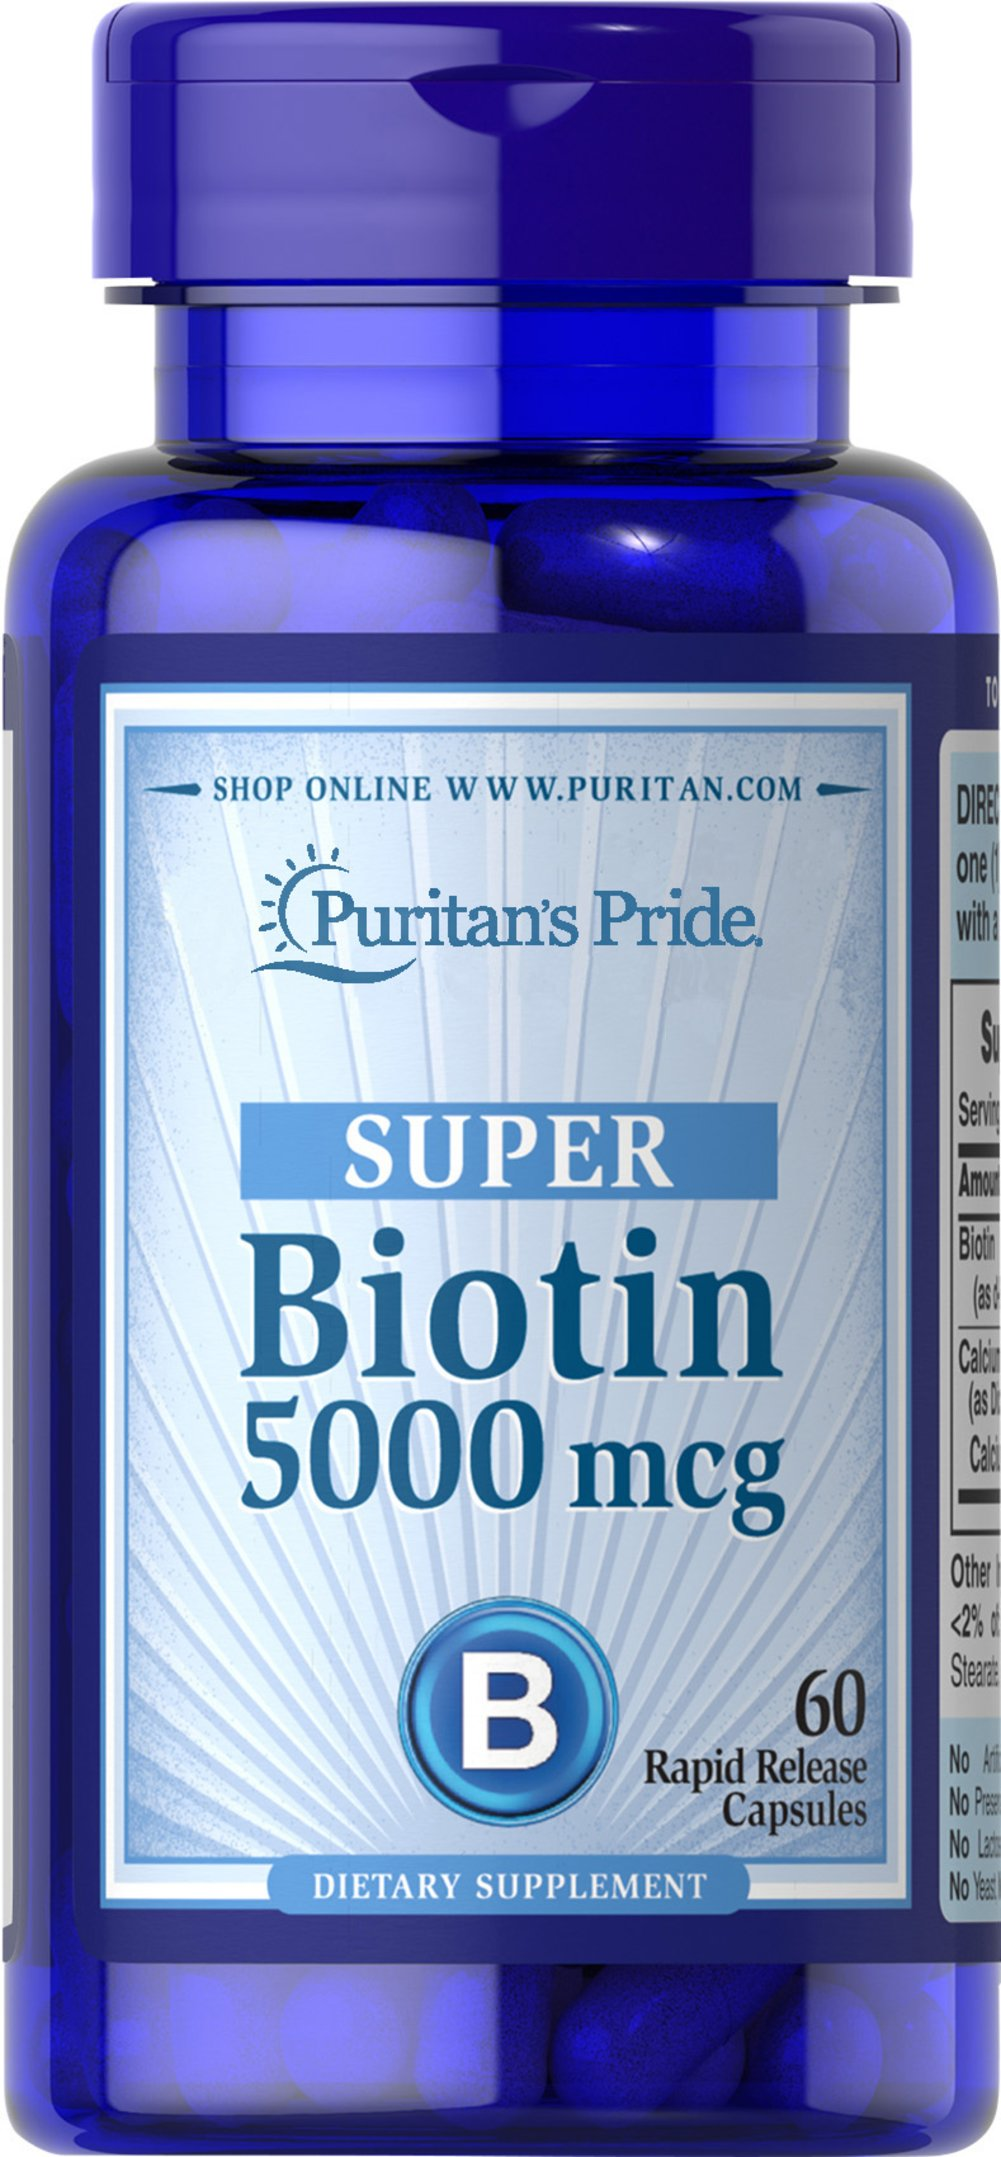 Biotin 5000 mcg <p>Supports Skin & Hair Health**</p><p>Found in foods such as oatmeal and soy, Biotin, a water-soluble B vitamin, assists in energy metabolism in cells.** Biotin helps to support healthy skin and hair.**</p> 60 Capsules 5000 mcg $9.99